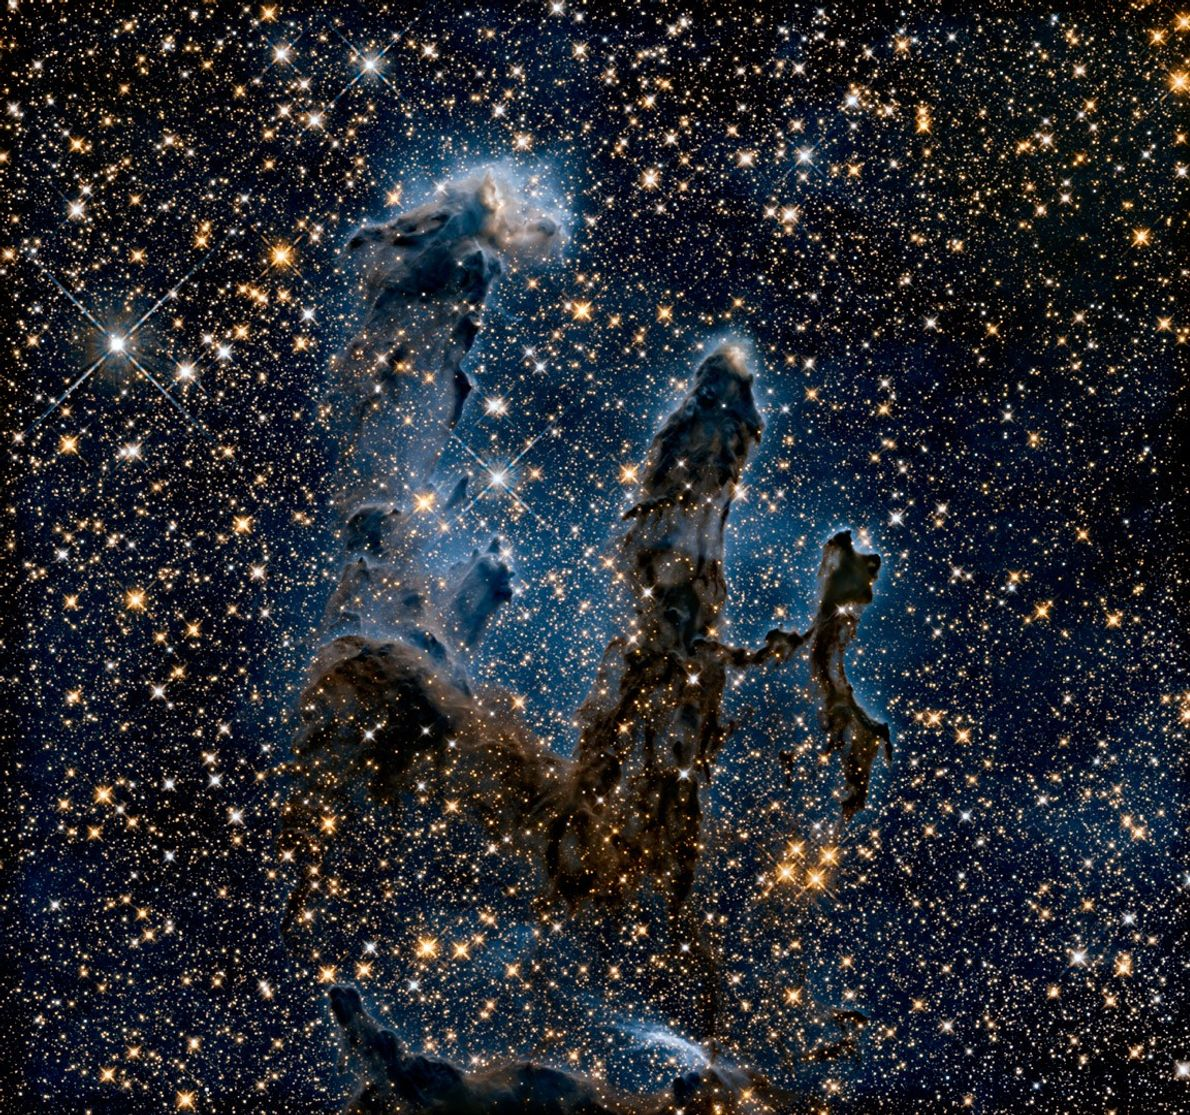 Pillars of Creation Revisited